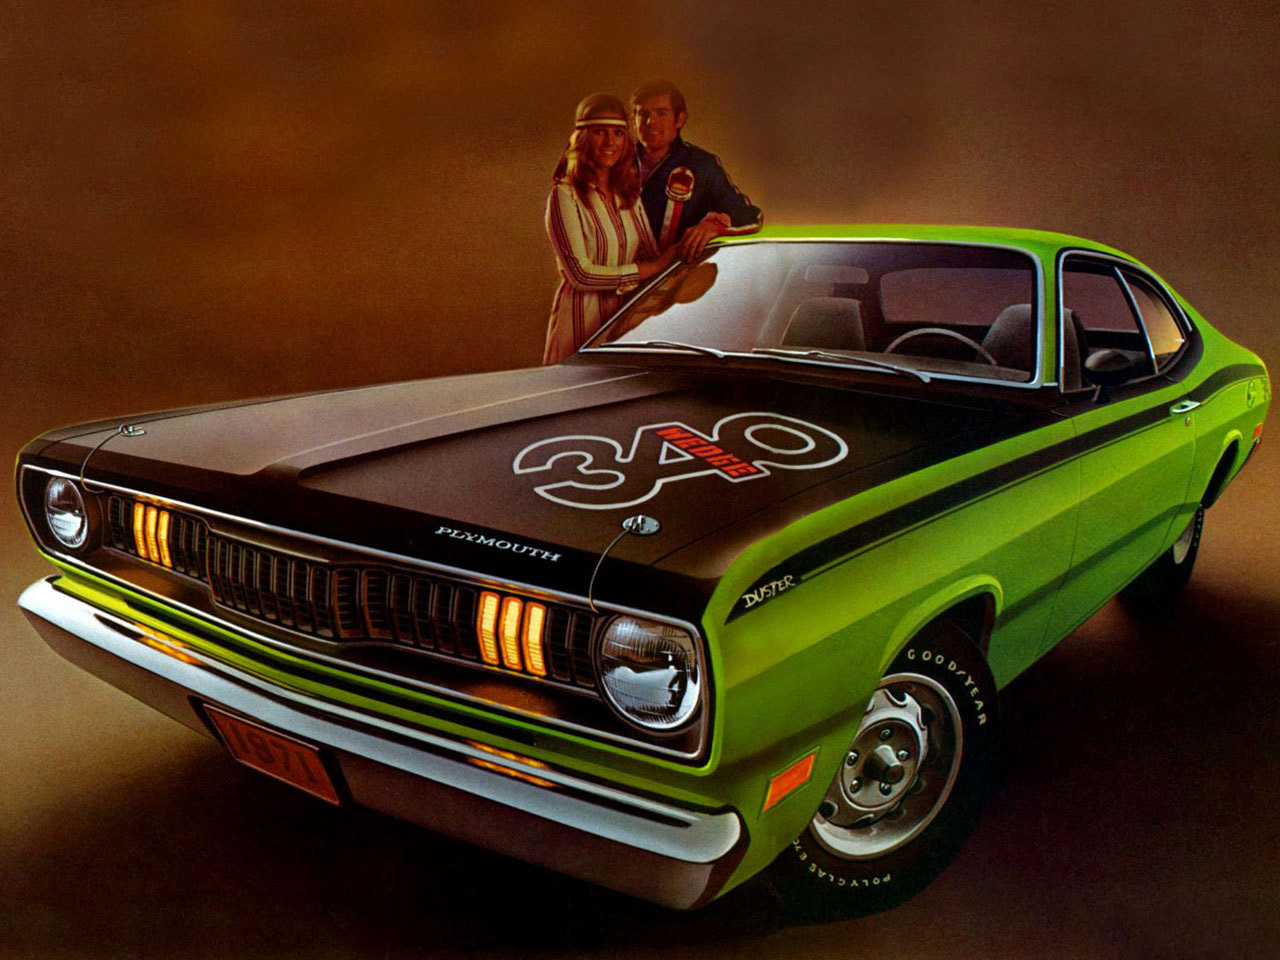 plymouth duster 1970 1976 plymouth duster 1970 1976 photo 05 car in pictures car photo gallery. Black Bedroom Furniture Sets. Home Design Ideas